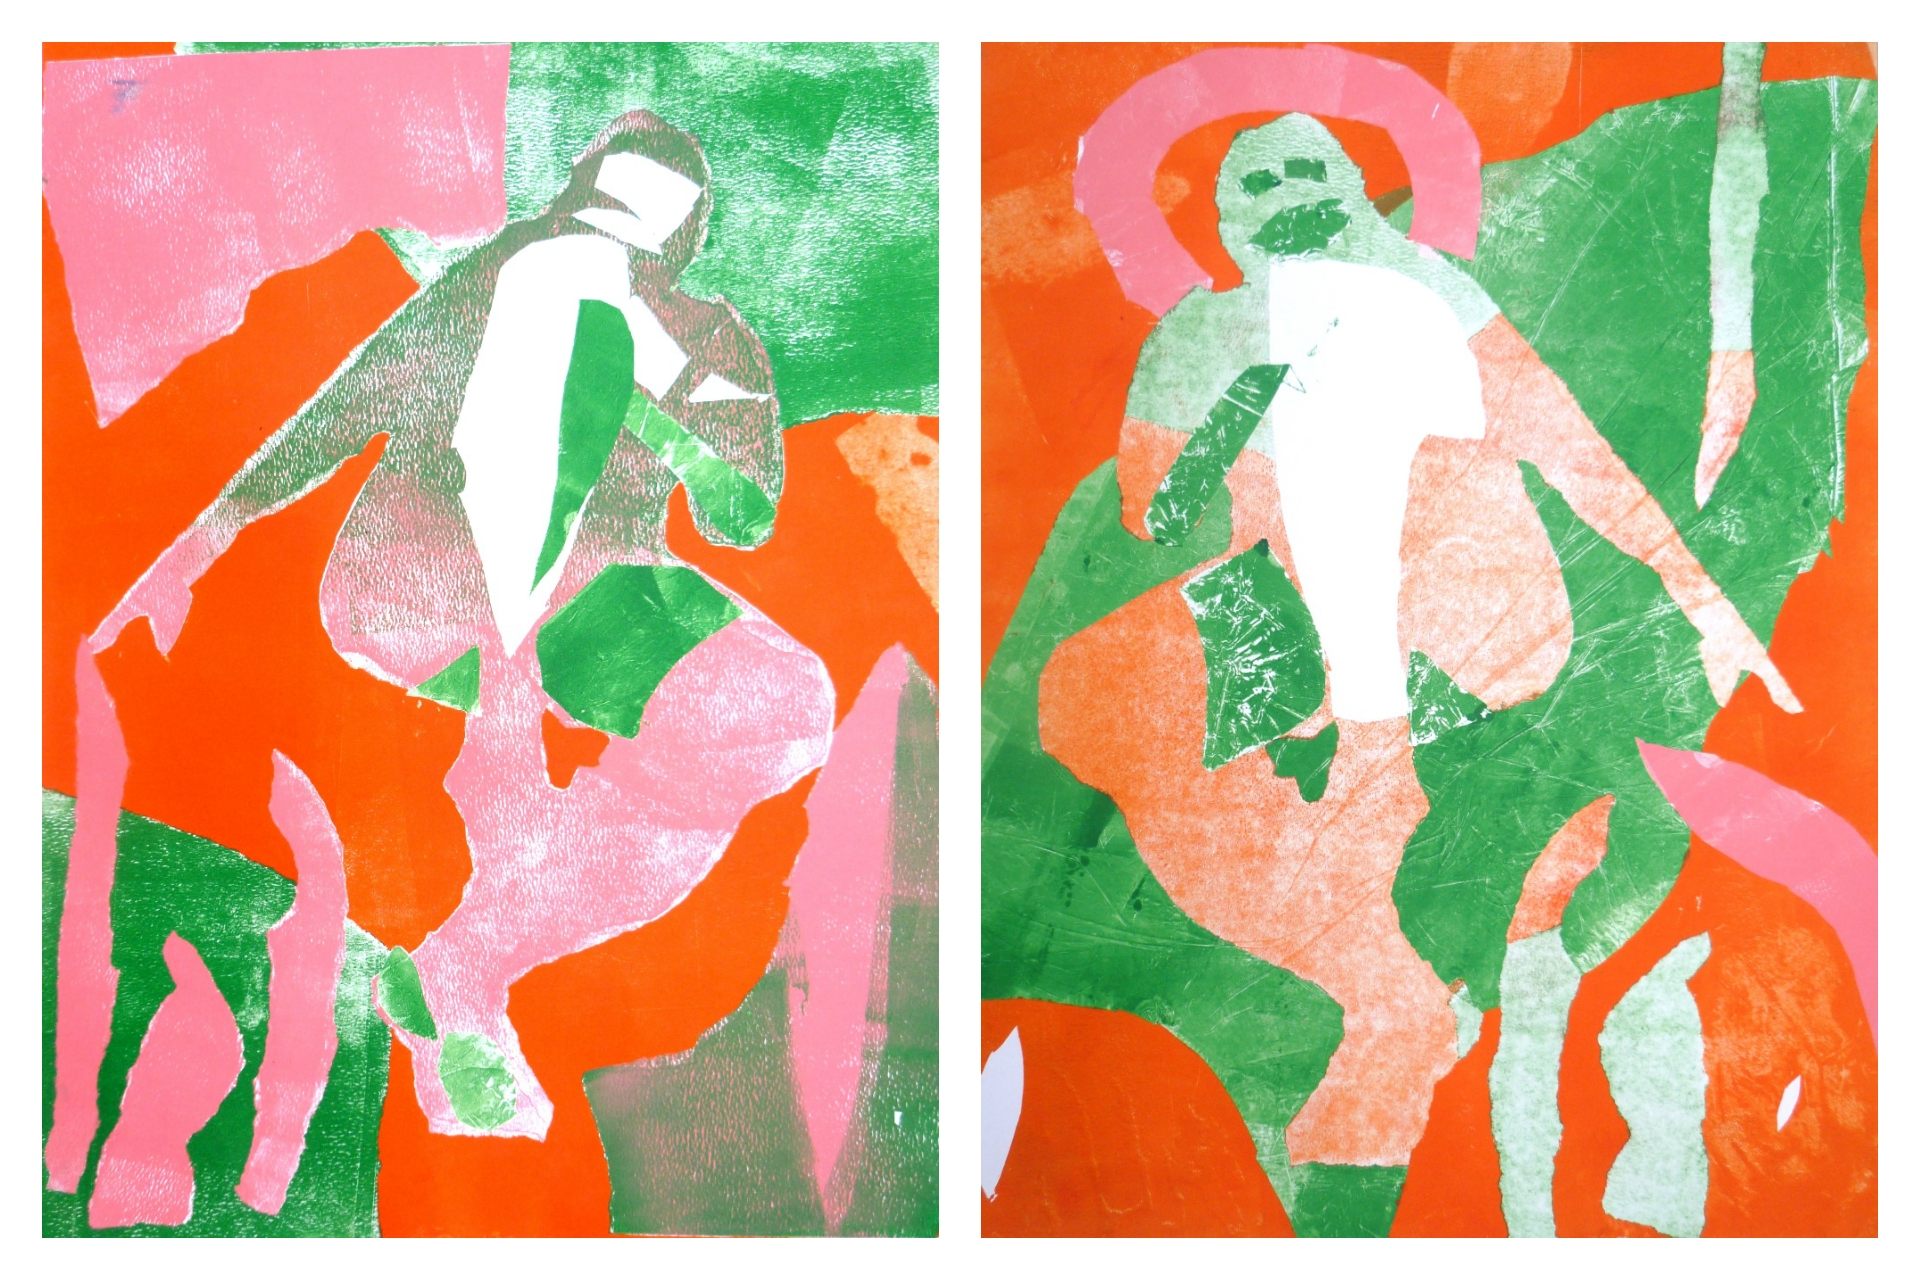 Reclining man in orange, green and pink (left and right) Rebecca Roscorla Monotype, each 54 x 41 cms, 2016